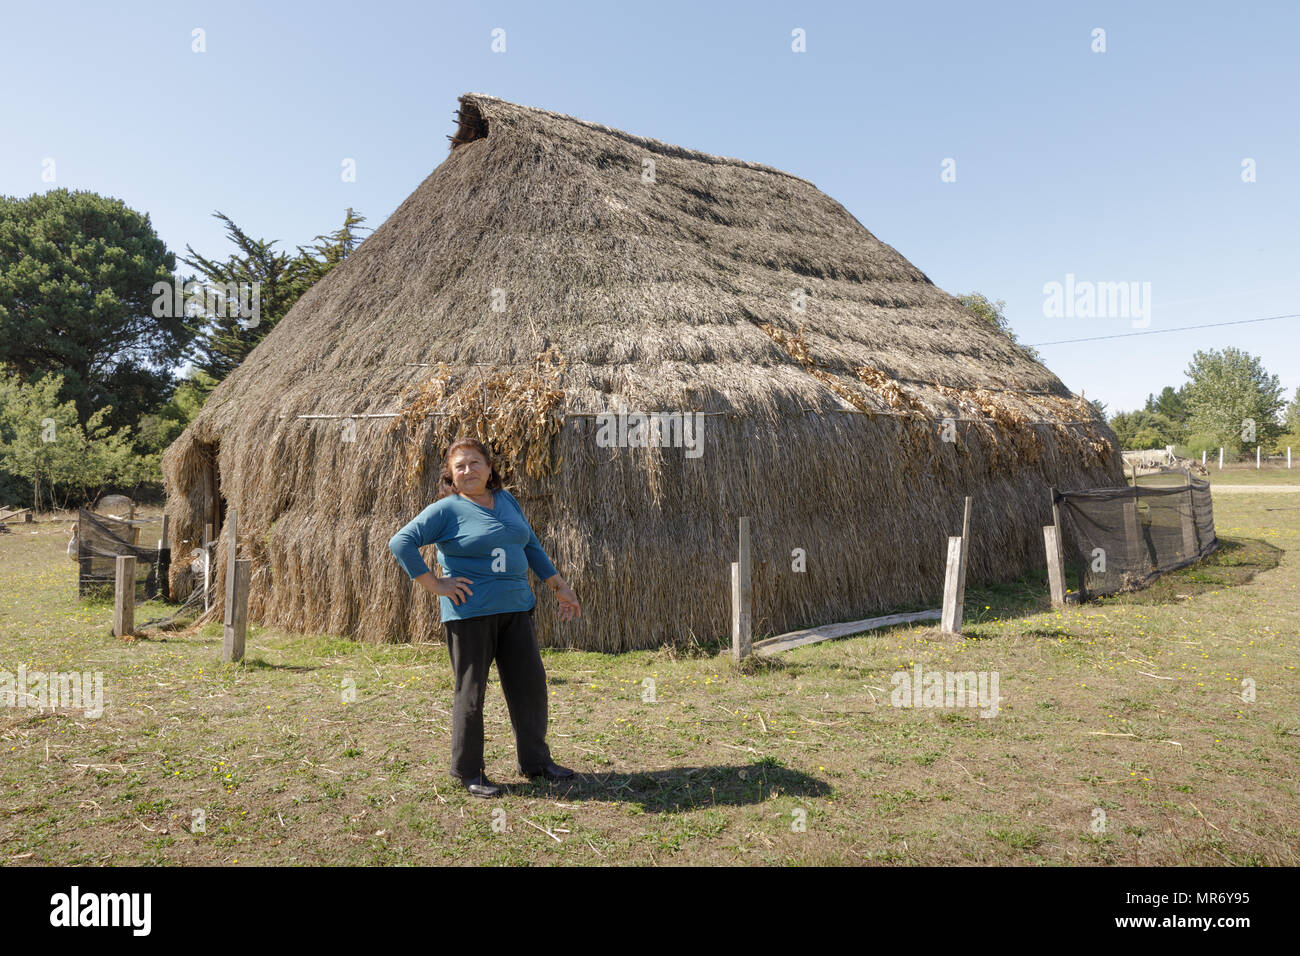 Cholchol, La Araucania, Chile: Mapuche woman stands in front of a reconstruc ted traditional communal thatch dwelling, called a ruka. - Stock Image